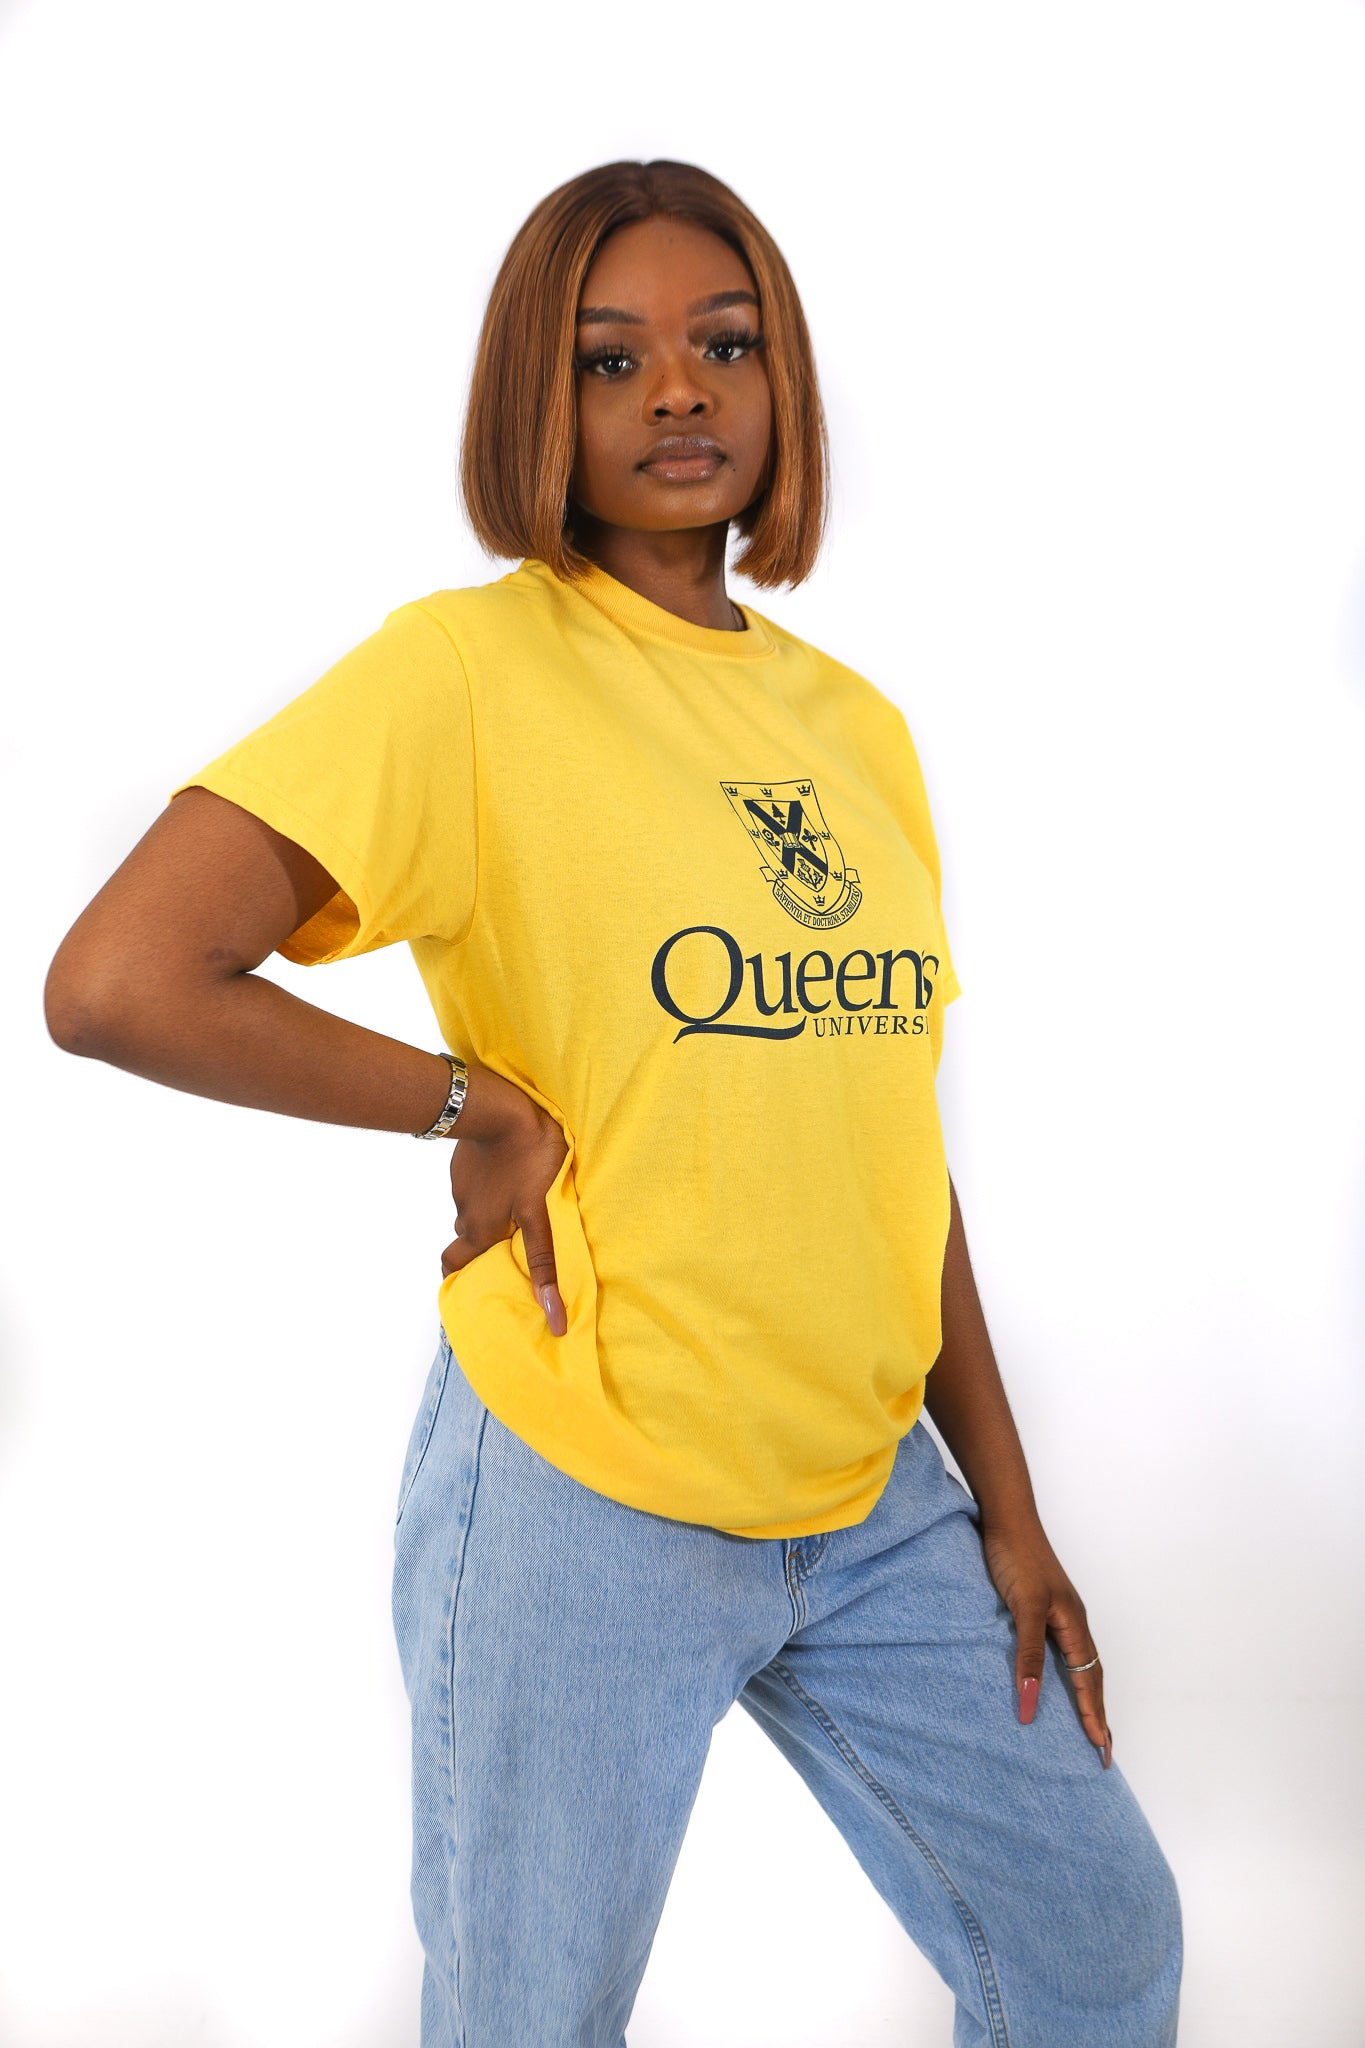 yellow tshirt with navy queens crest